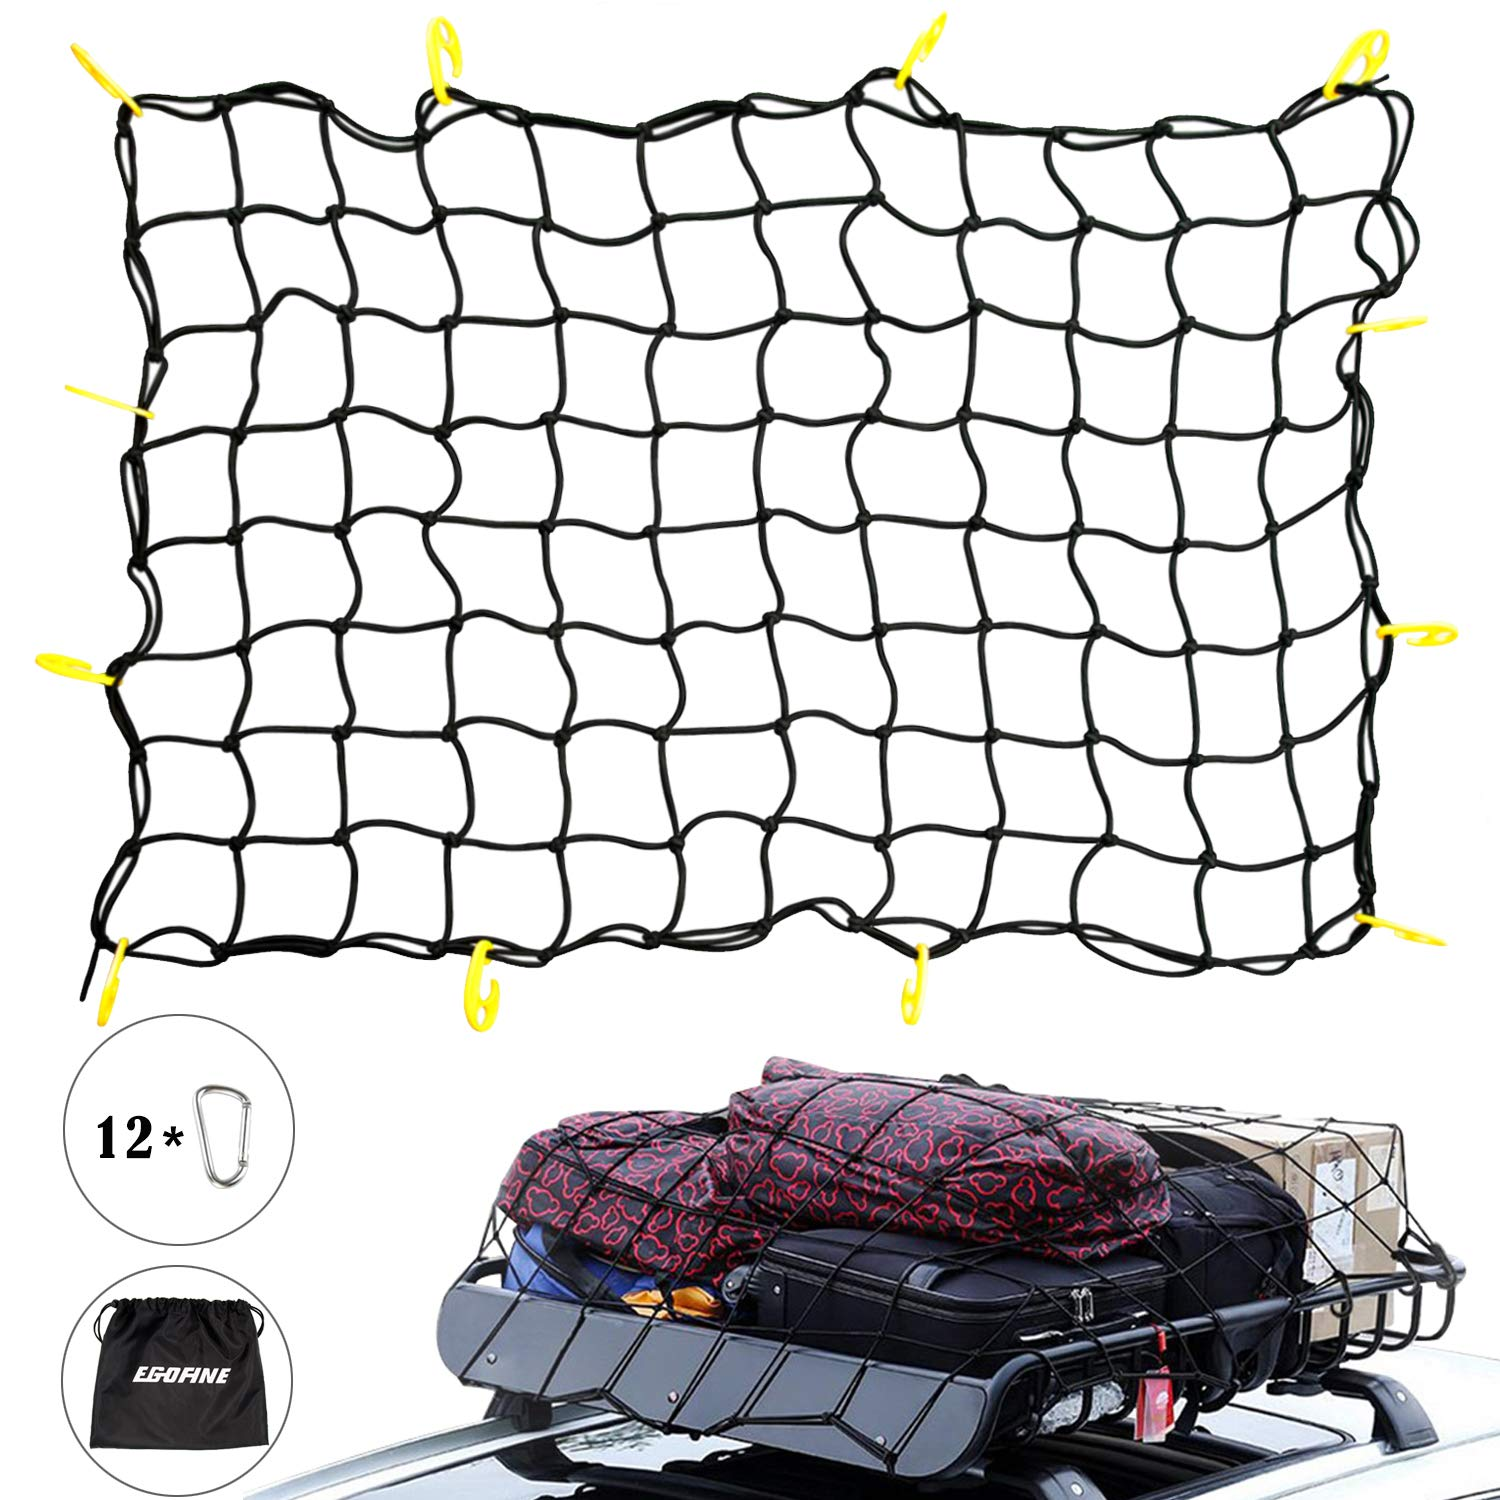 "Egofine Roof Bungee Adjustable Cargo Net - Heavy Duty Cargo Net for Roof Cargo Rack 3'x4.25' Max Stretches to 6'x8.5', Small Mess of 4""x4"" fits SUV, Pickup and Truck Bed QA1002-02"